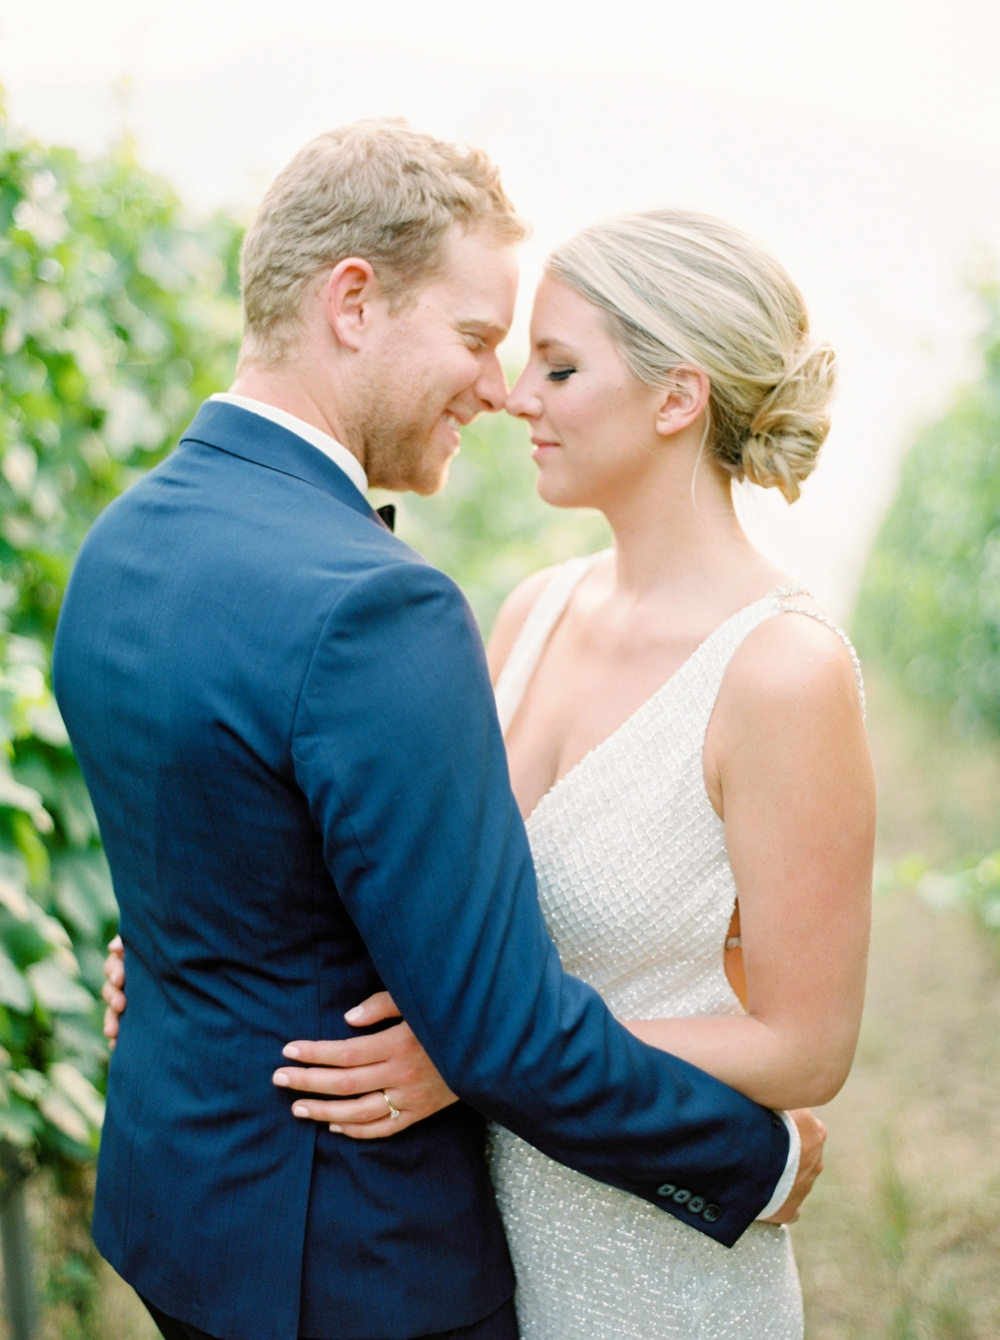 Painted Rock Winery | Penticton wedding photographer | Kelowna Wedding photography | Okanagan Wedding photographers | Justine Milton fine art film